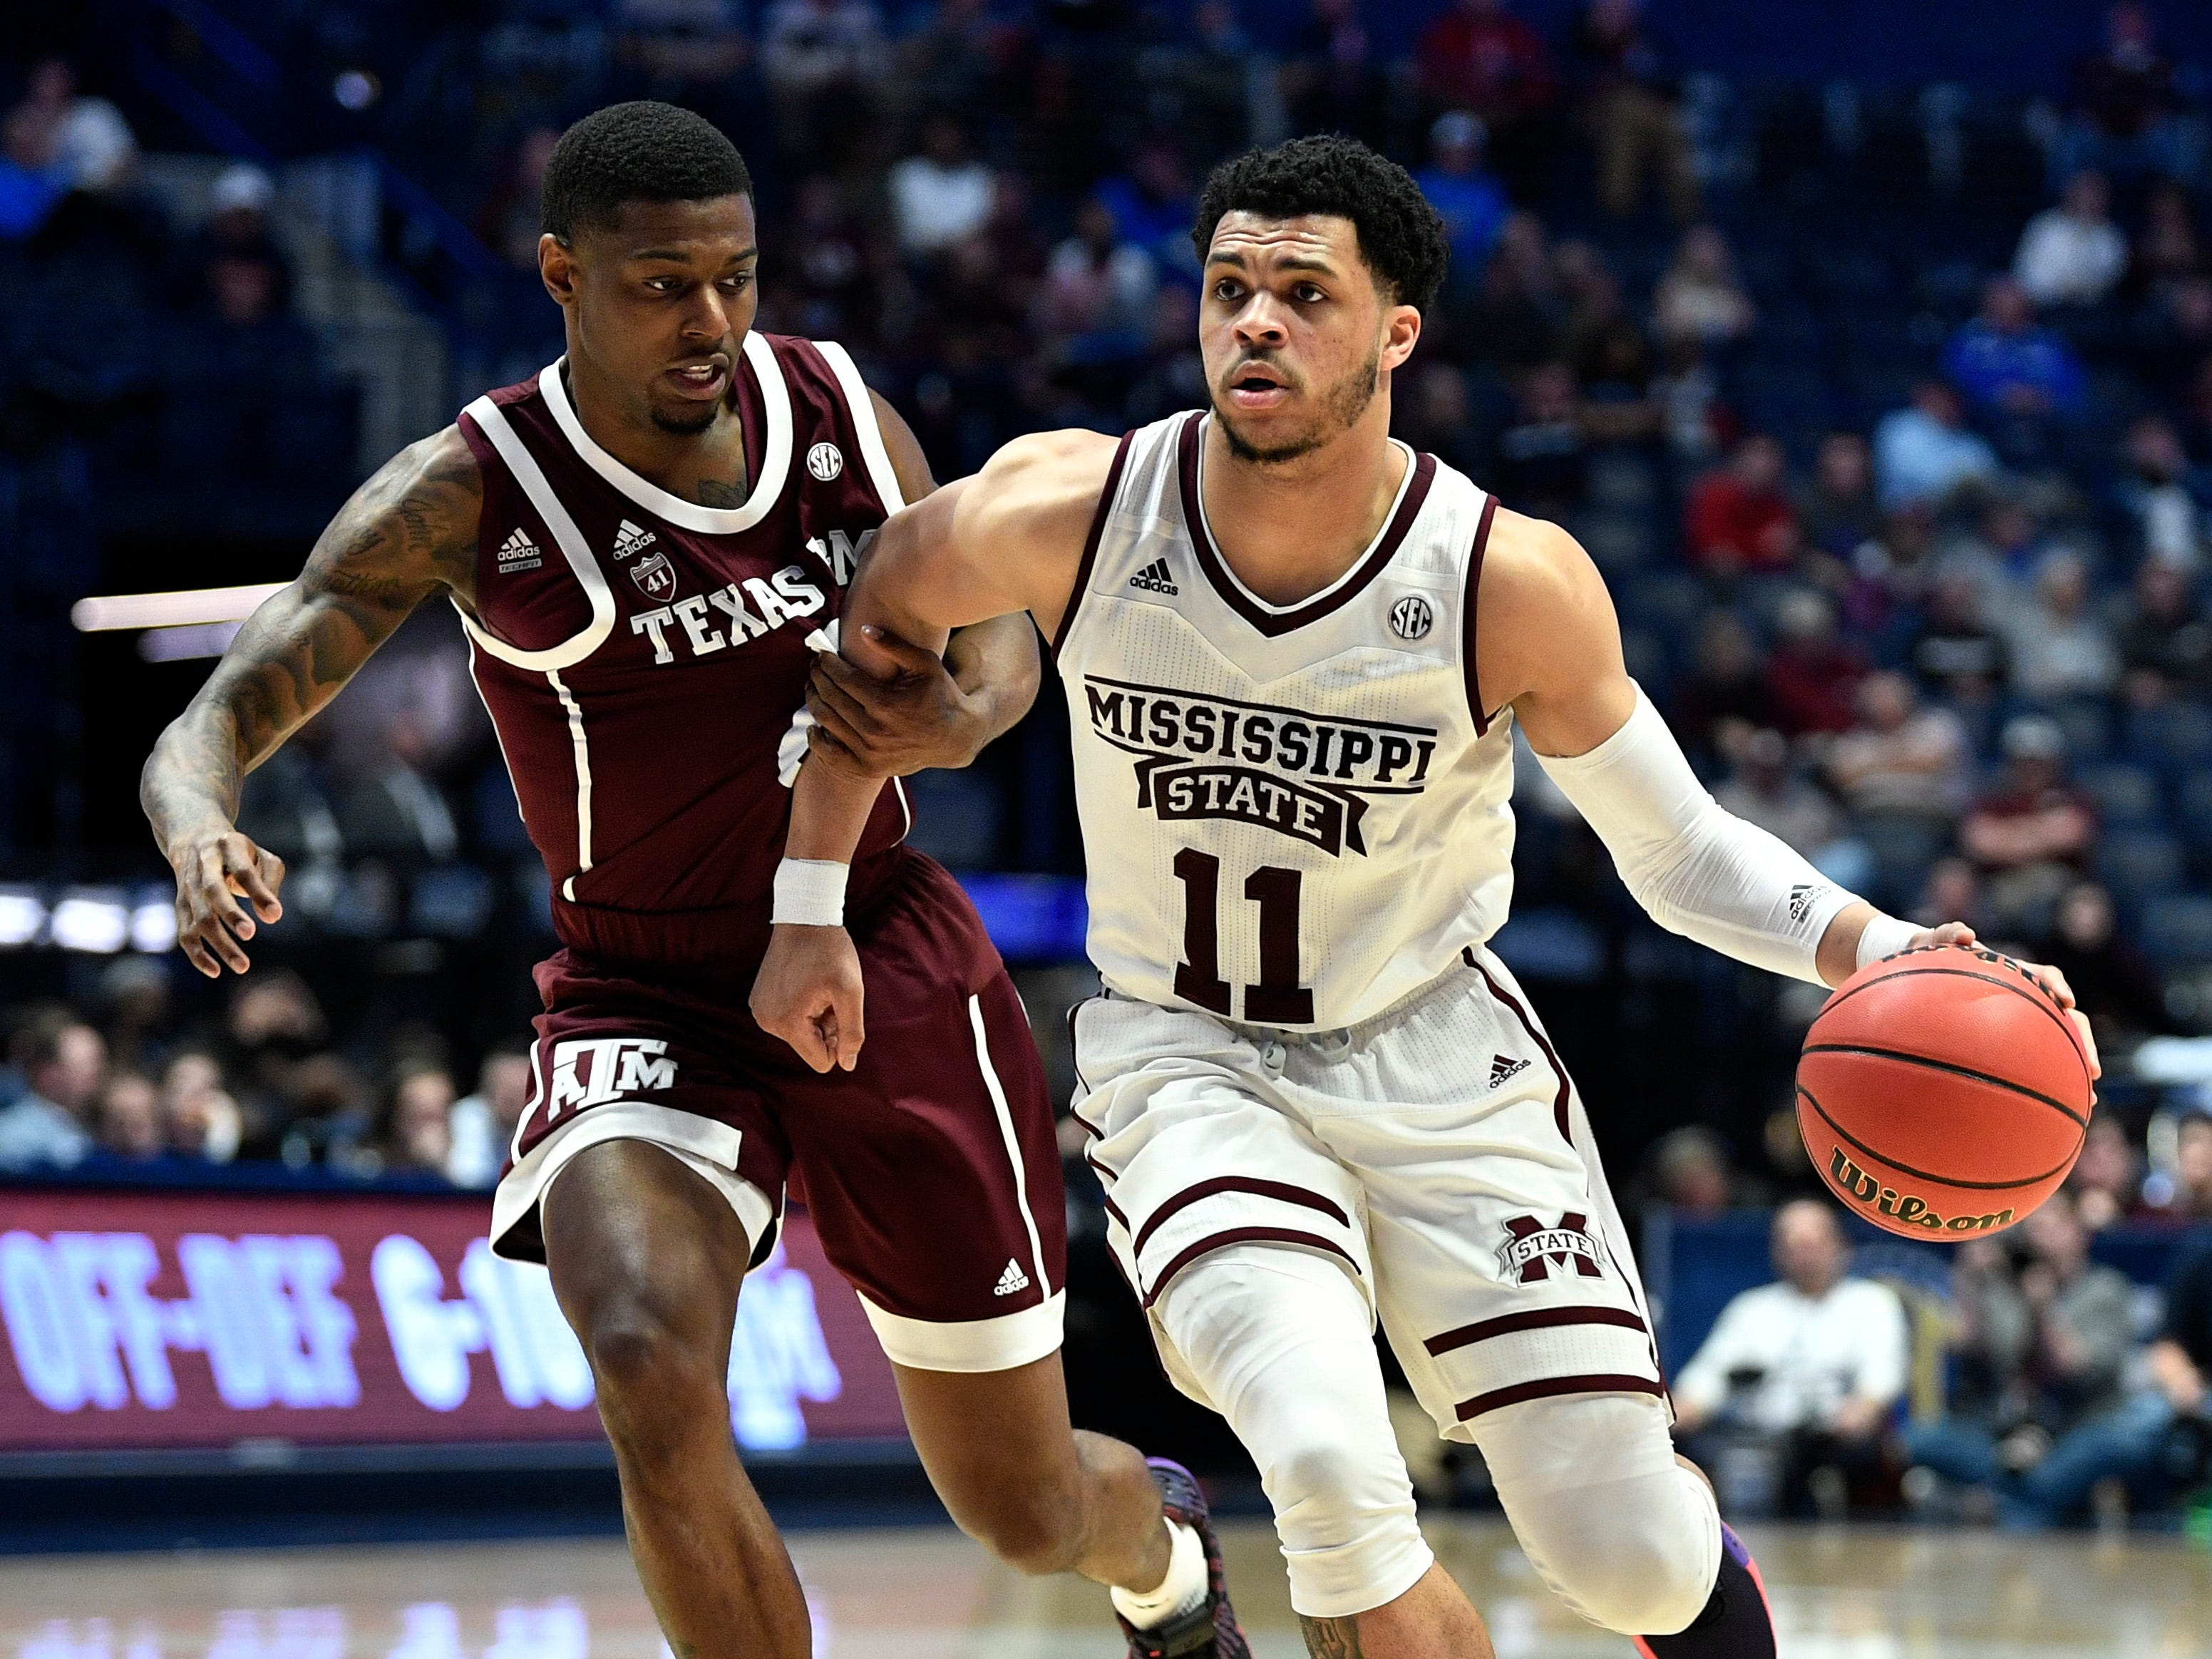 Mississippi State guard Quinndary Weatherspoon (11) moves the ball as Texas A&M guard Jay Jay Chandler (0) hangs on during the second half of the SEC Men's Basketball Tournament game at Bridgestone Arena in Nashville, Tenn., Thursday, March 14, 2019.